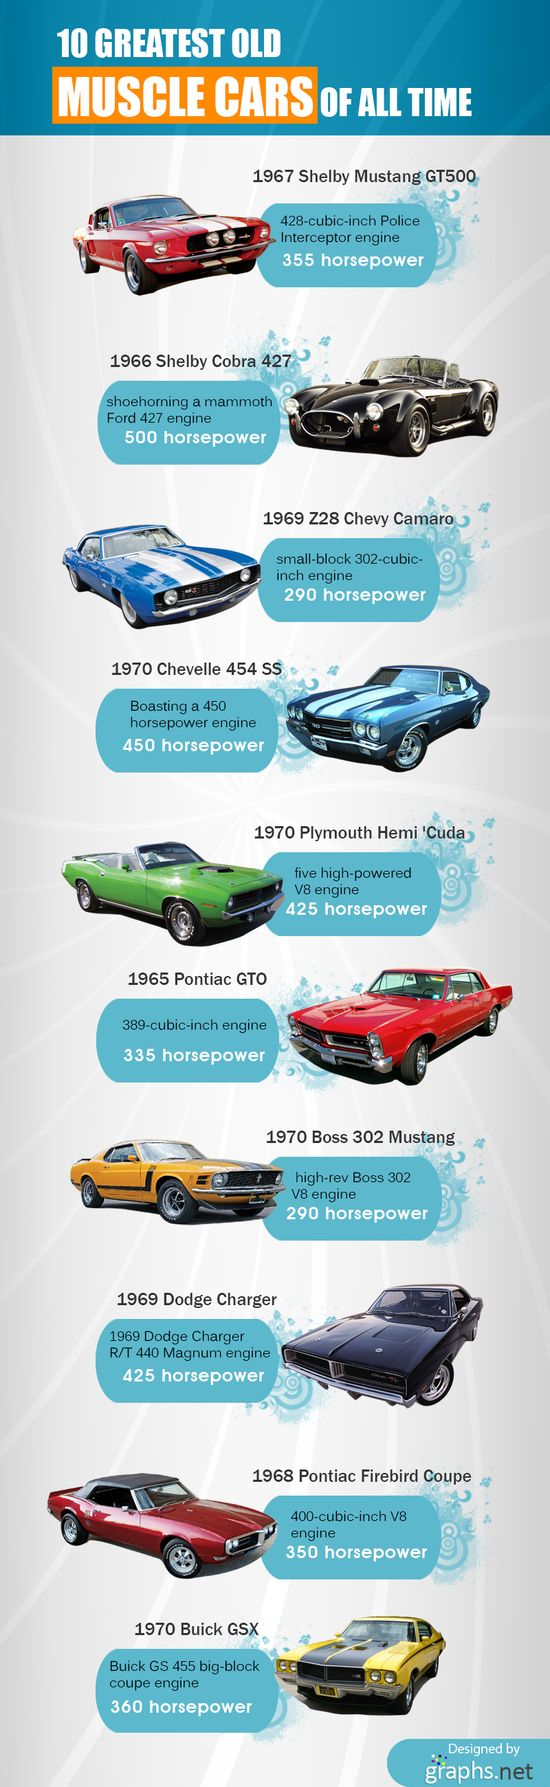 10 Greatest Old Muscle Cars Of All Time #10 #Greatest #Old #Muscle #Cars #All #Time #Infographics